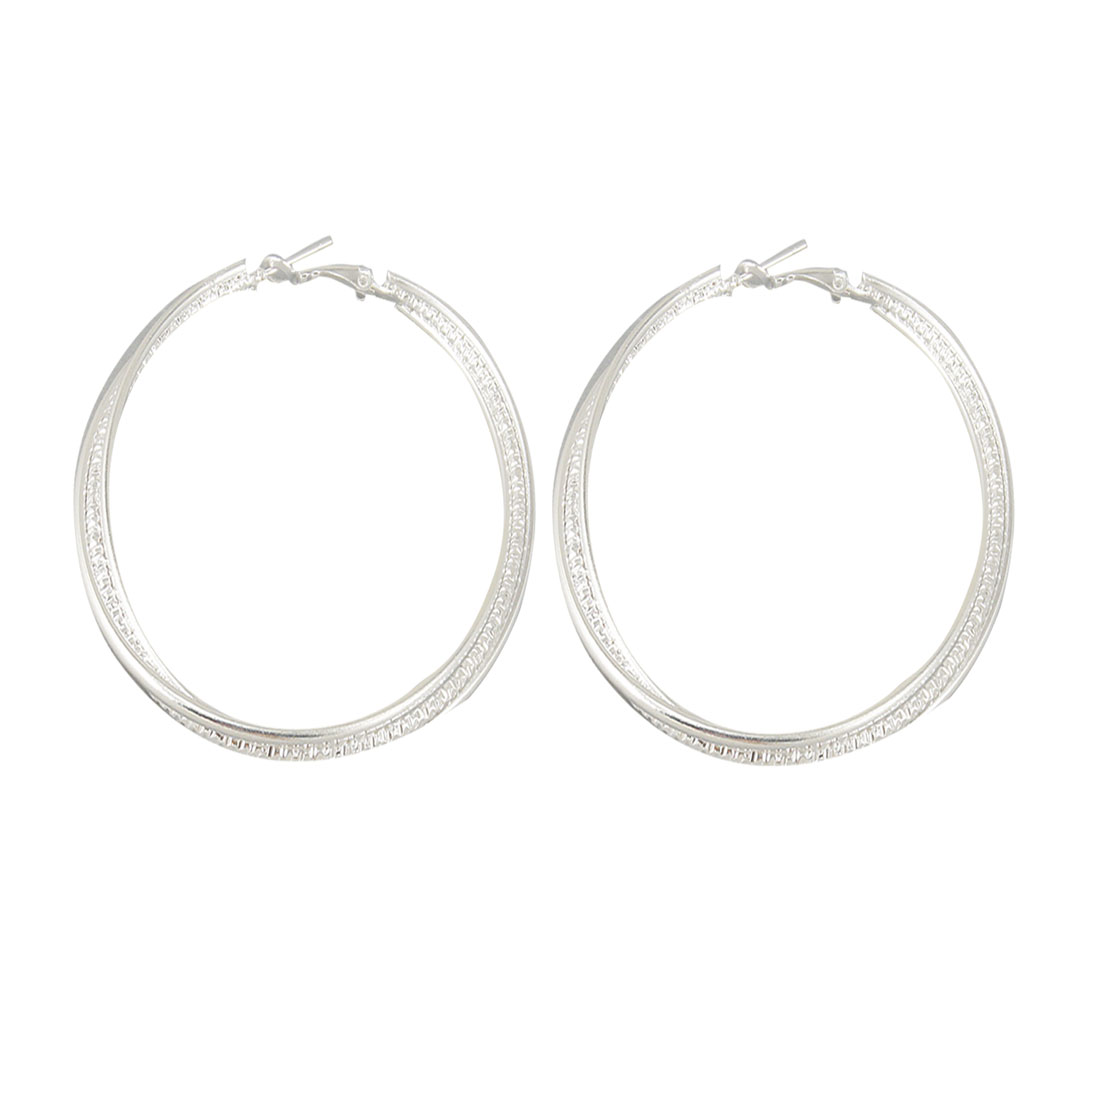 Pair 3 Rings Textured Silver Tone Spring Hoop Earrings Earwear for Ladies